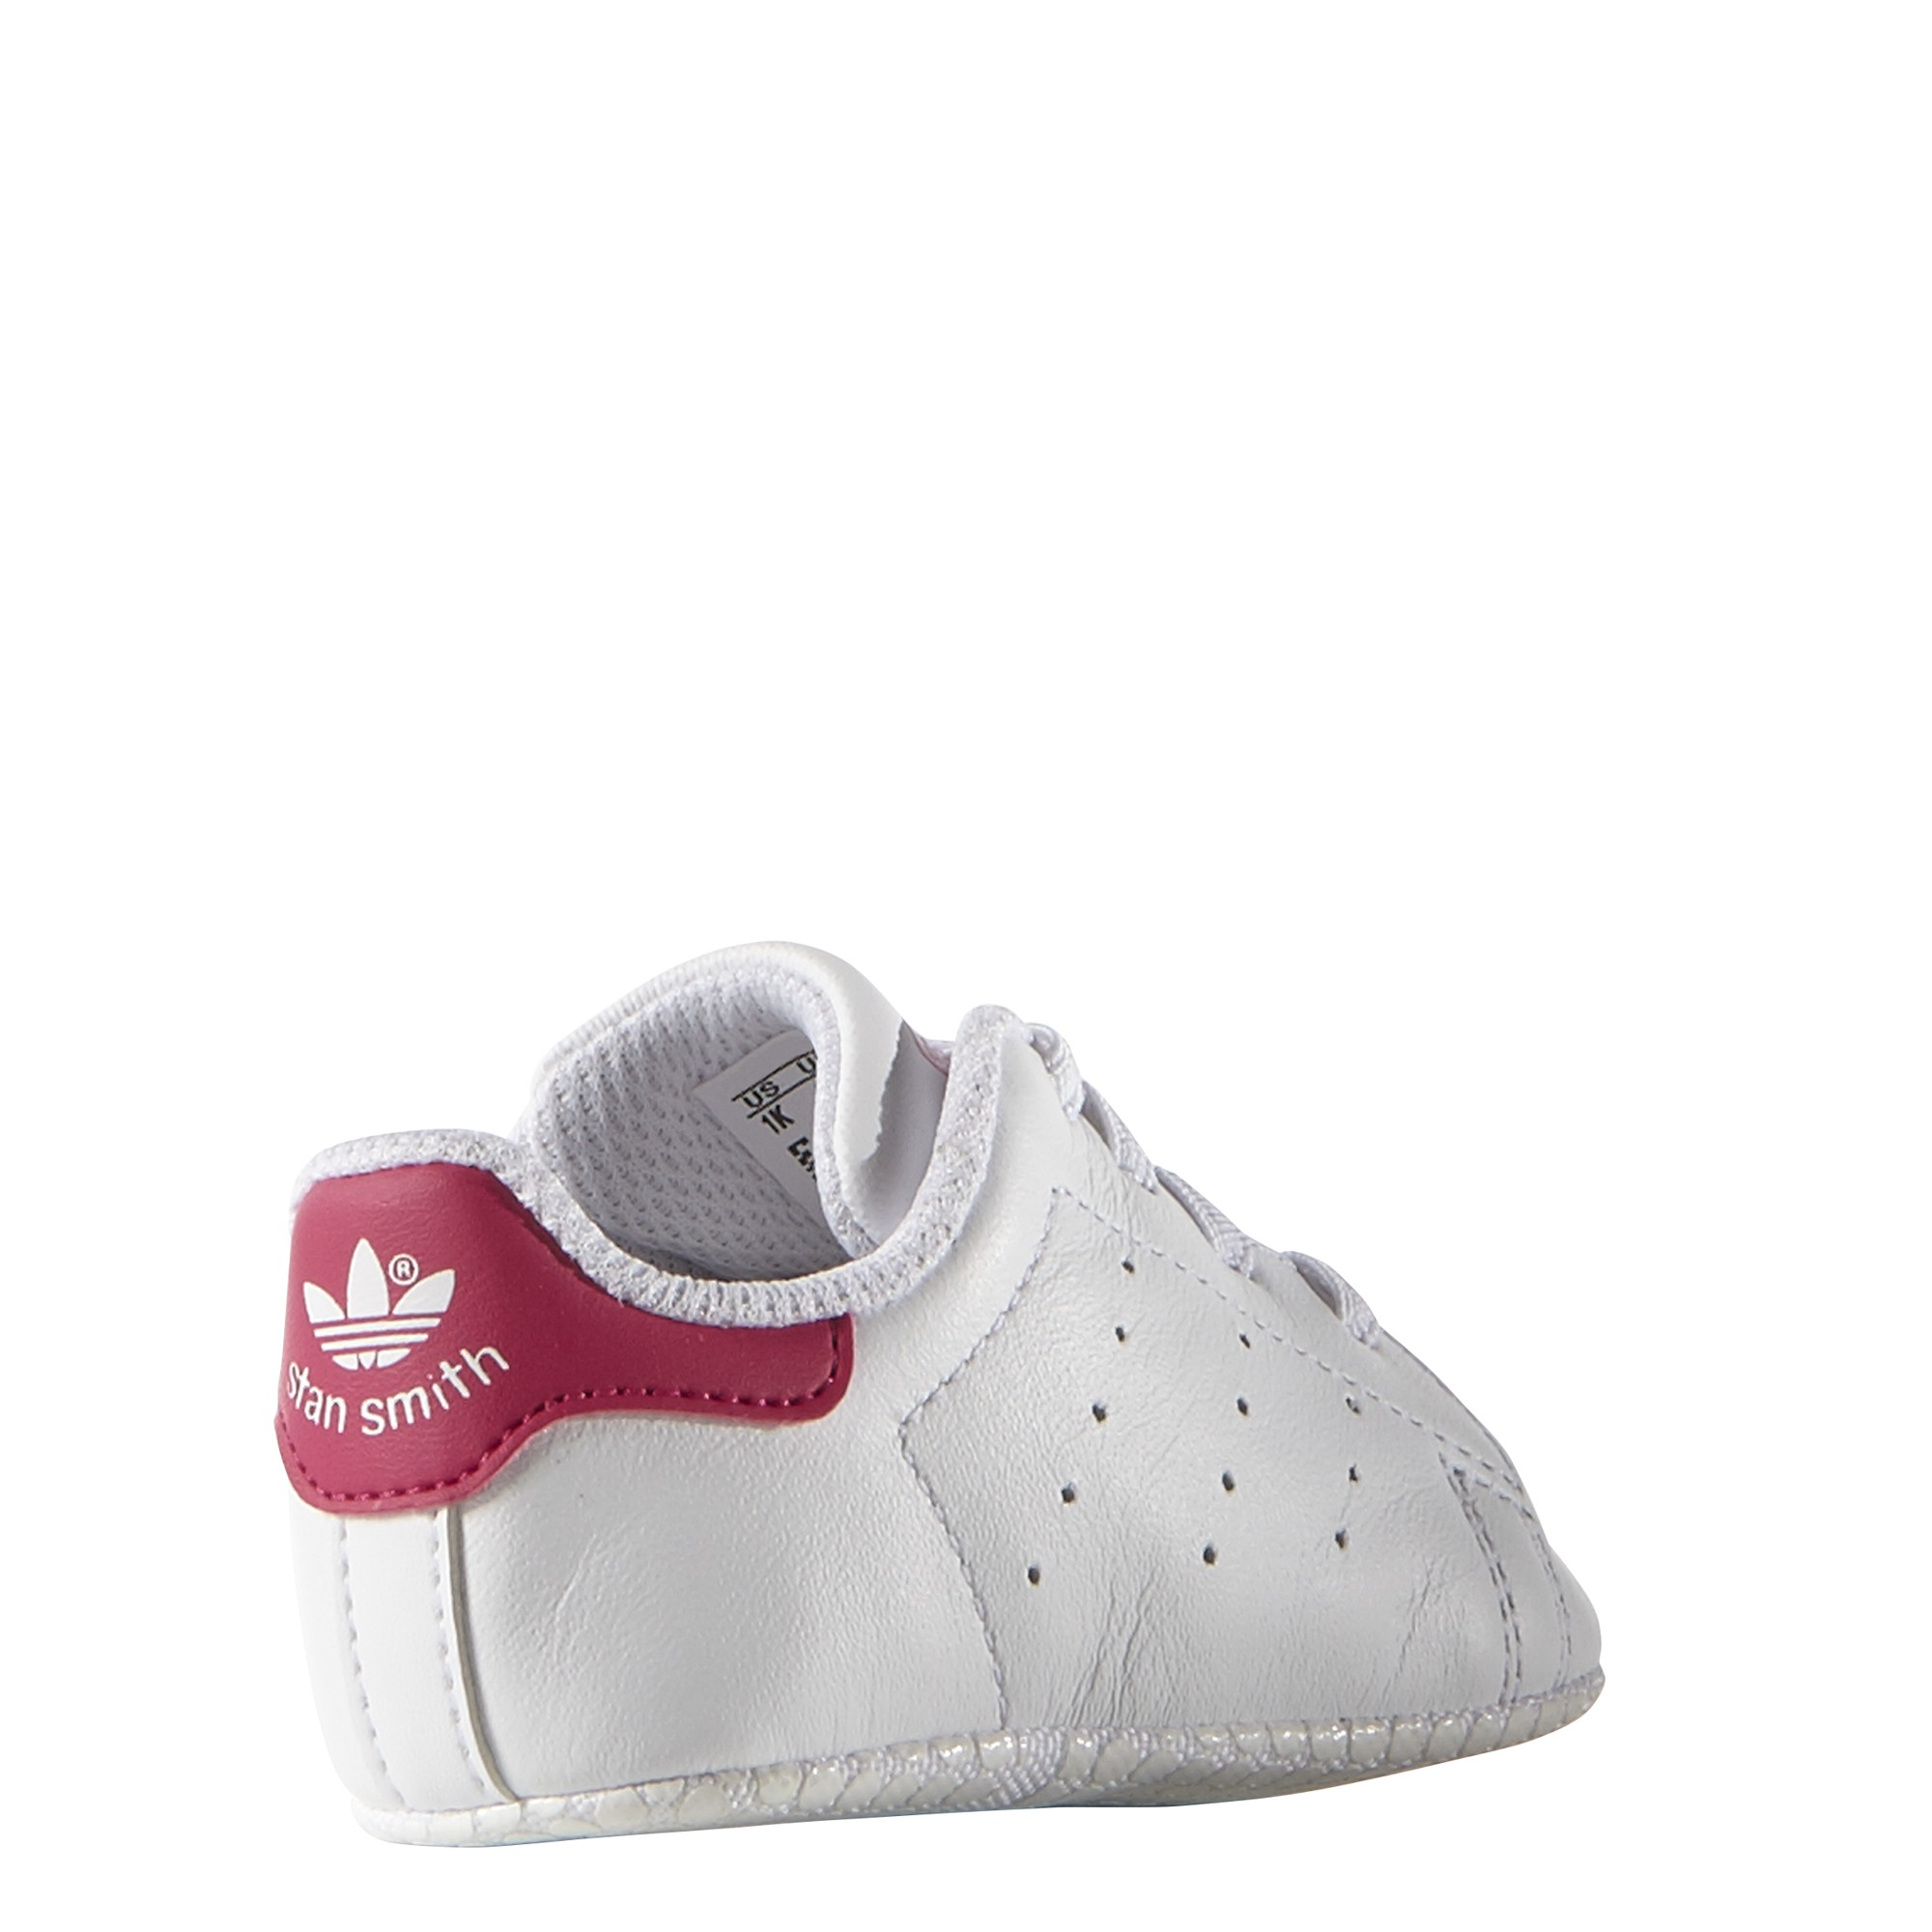 4f6906216706e Bébé Adidas Smith Fille Baskets Blancrose Stan rUqaA58xqw